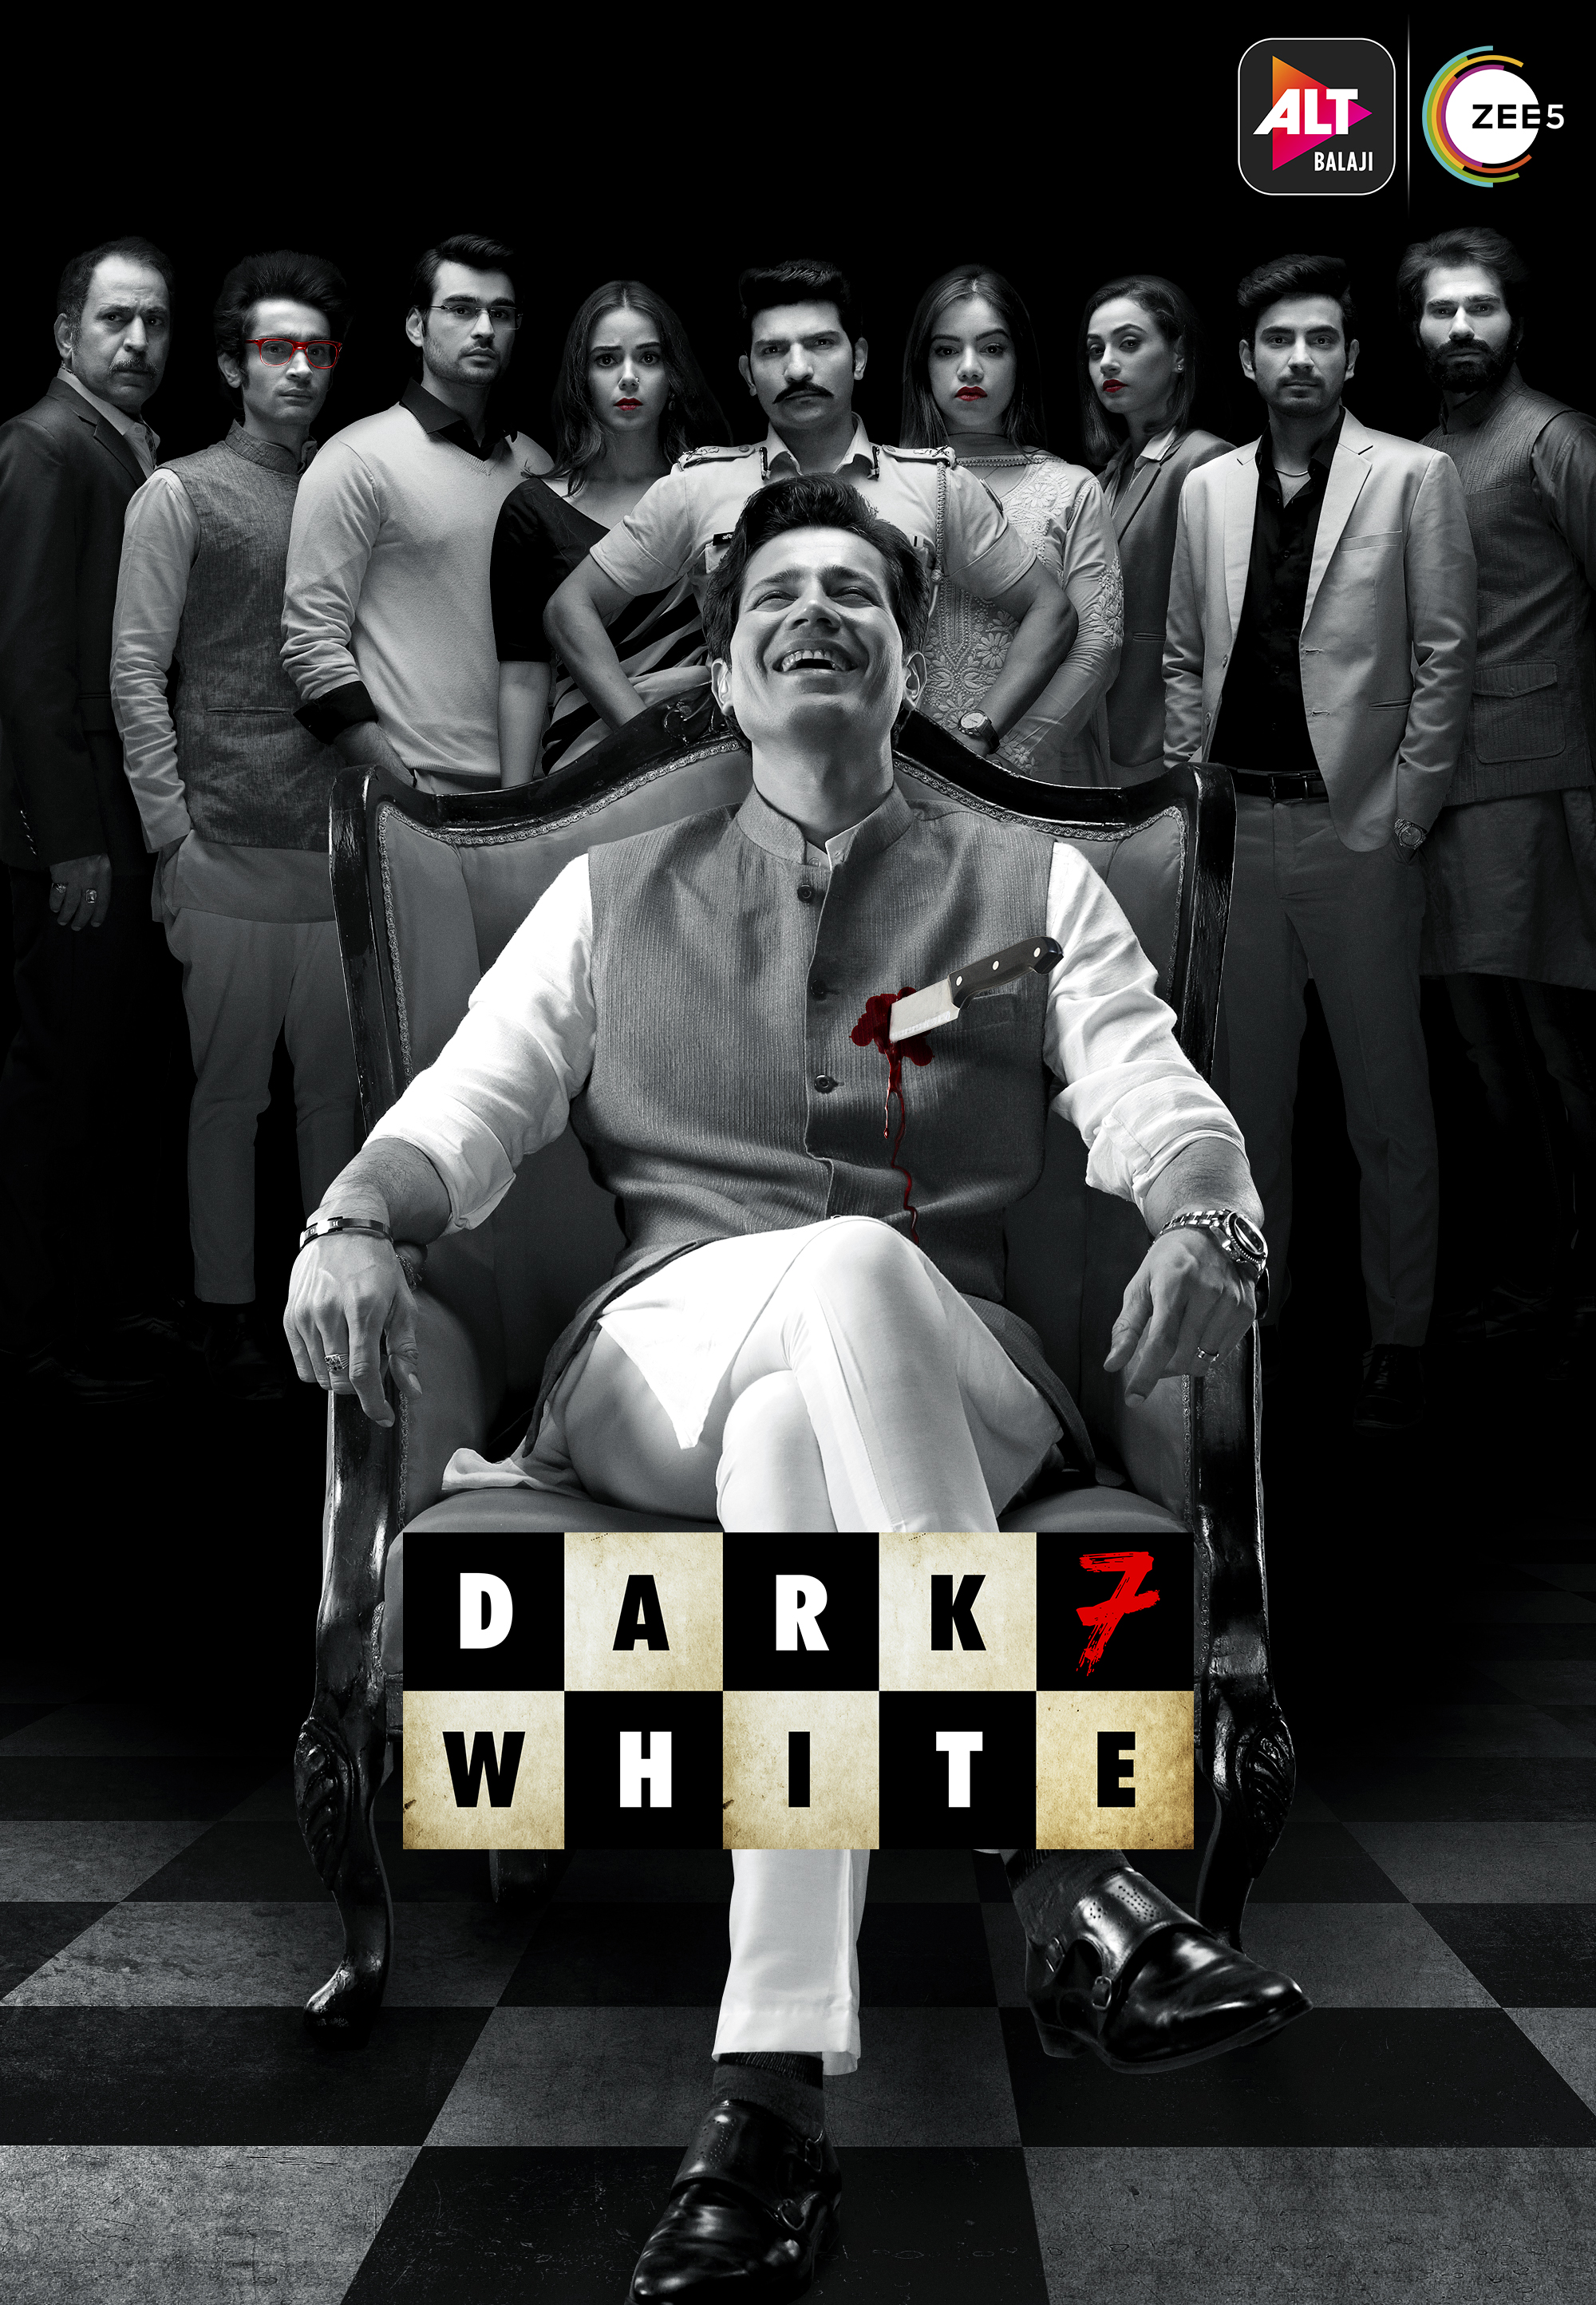 Dark 7 White 2020 S01 Hindi Complete ALTBalaji Original Web Series 1080p HDRip 2.9GB Download